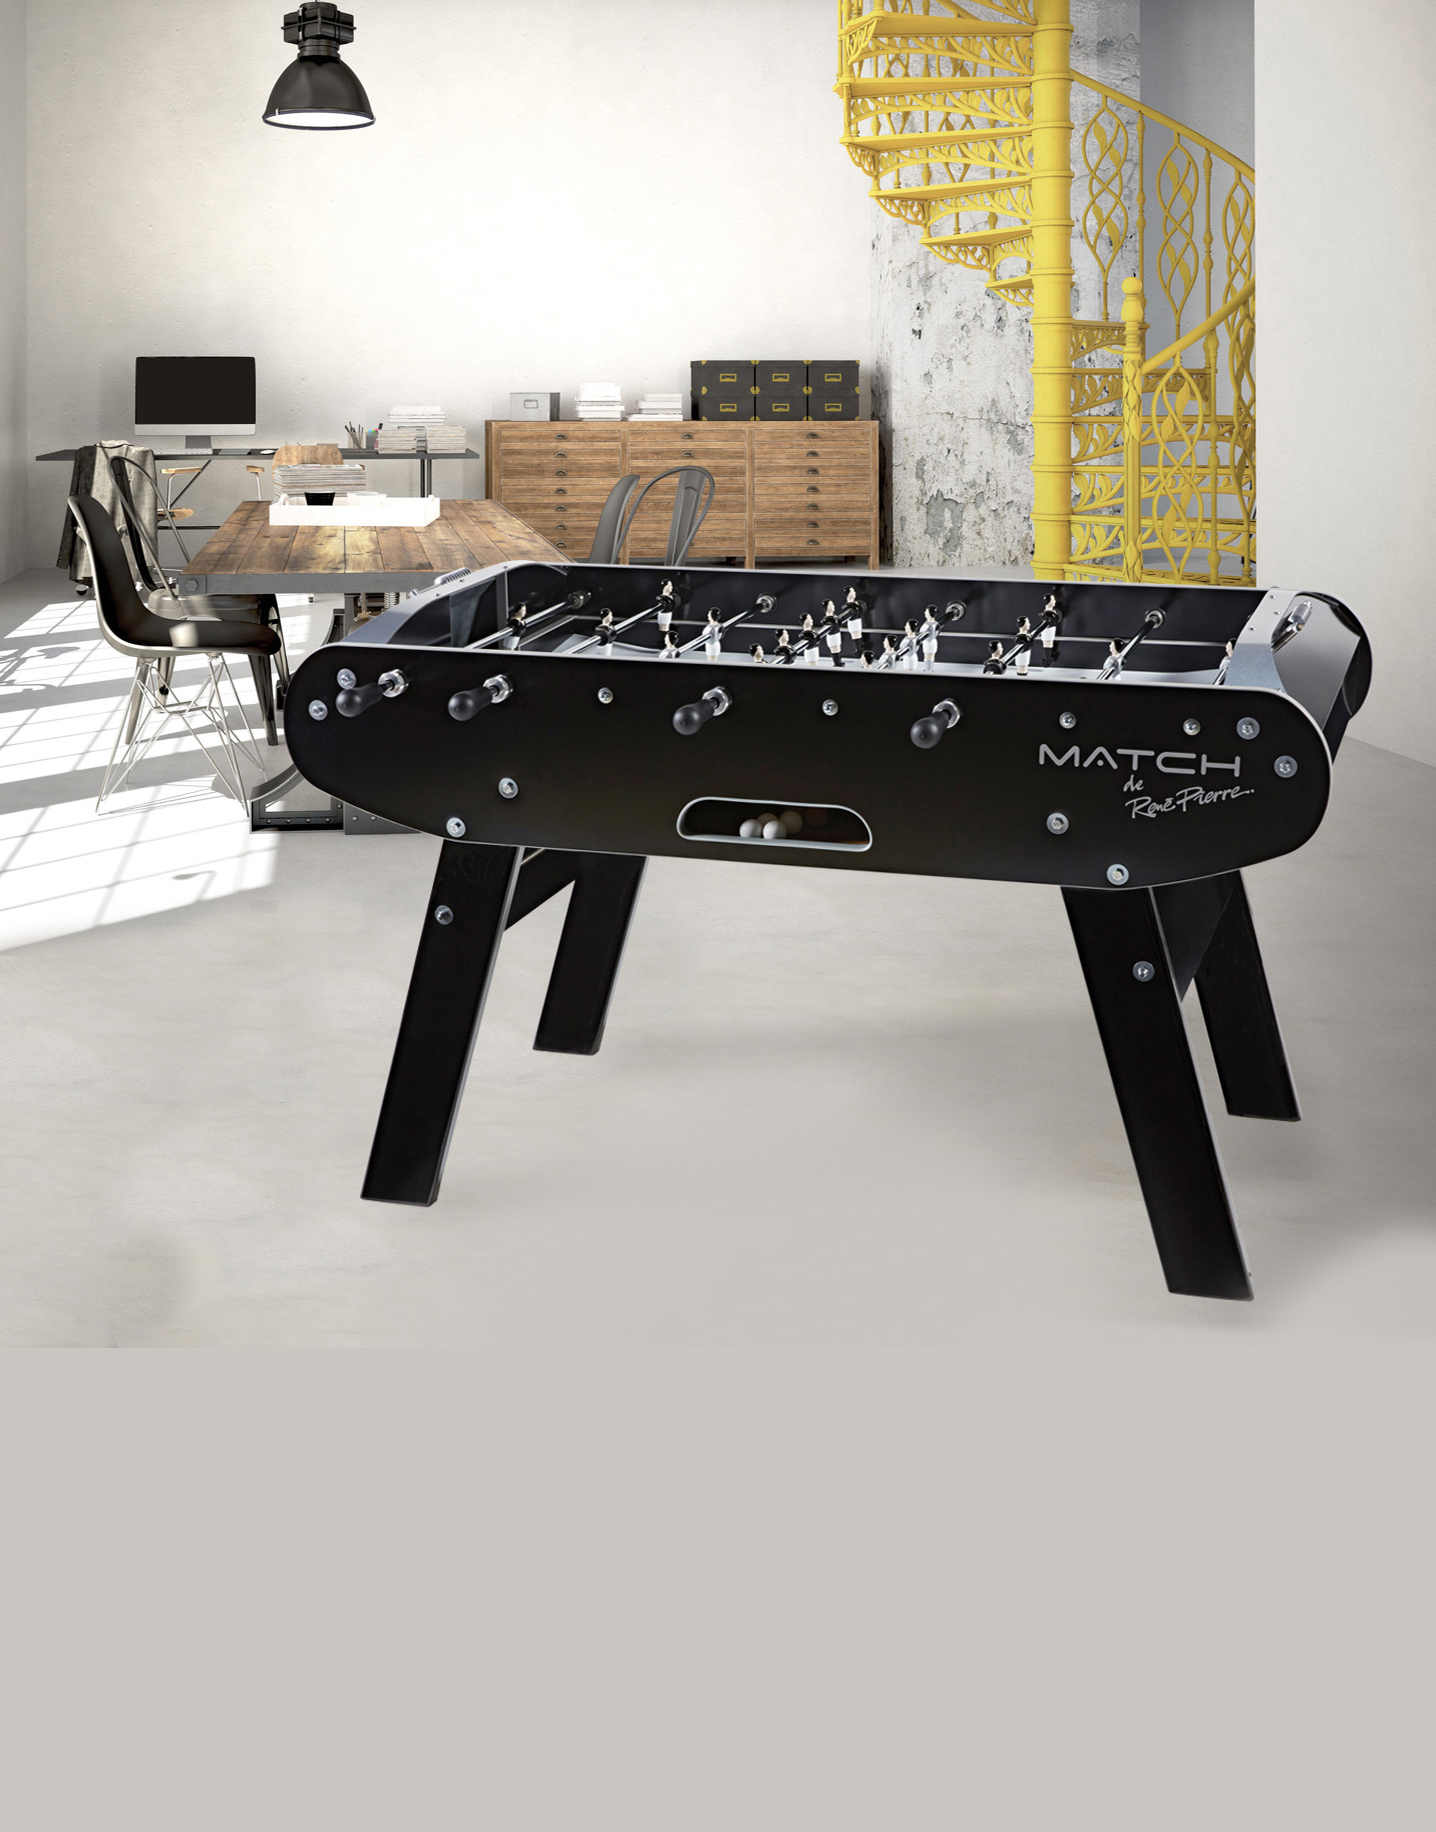 Football tables and Billiards René Pierre 0e2b358e60ce